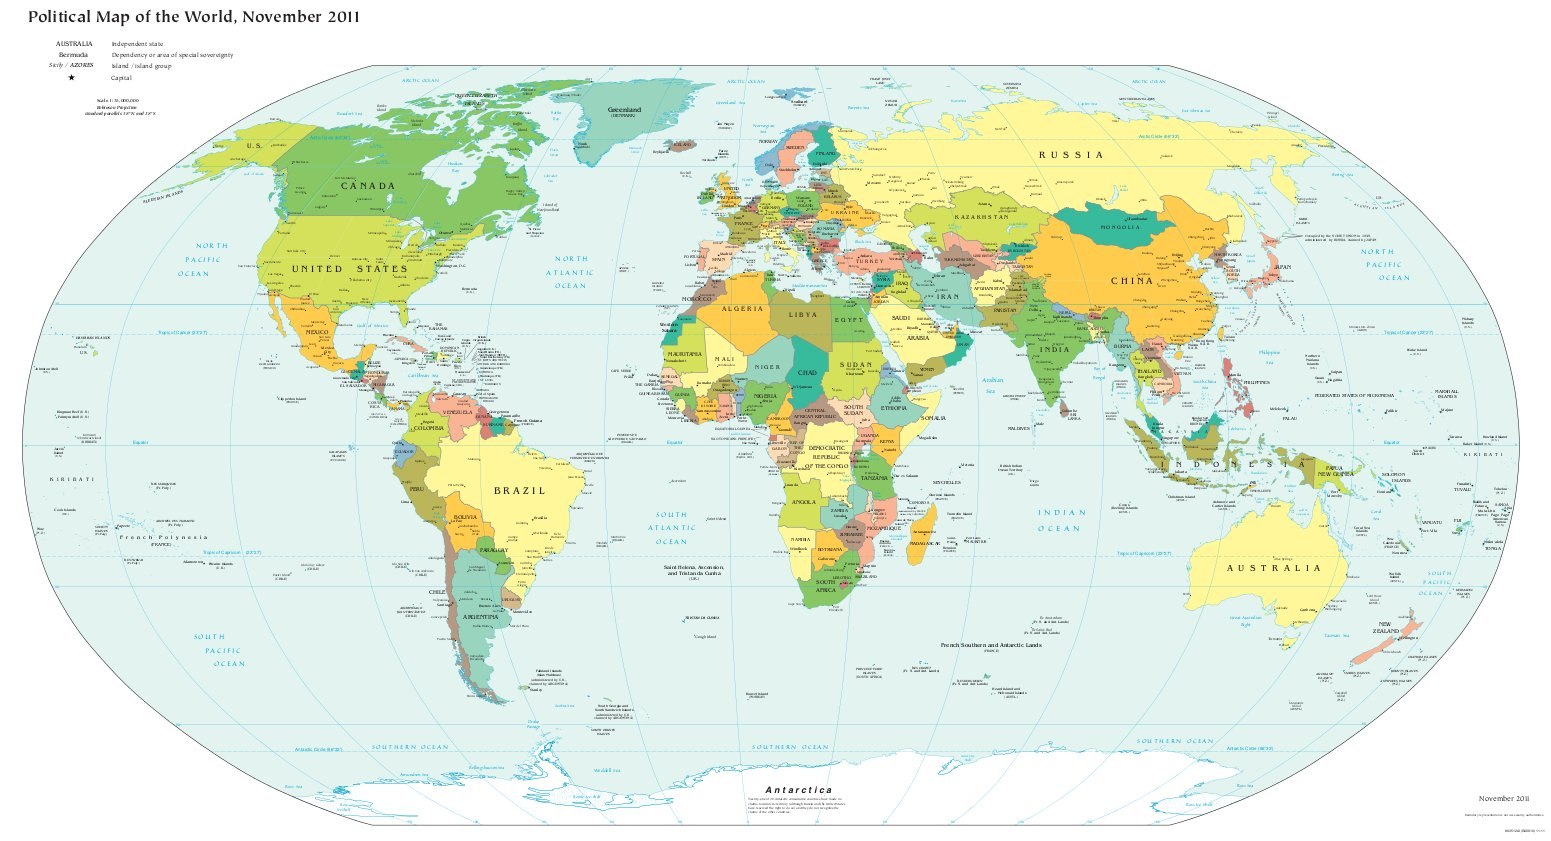 World map political map colored pdf worldofmaps online world map political map colored pdf gumiabroncs Choice Image